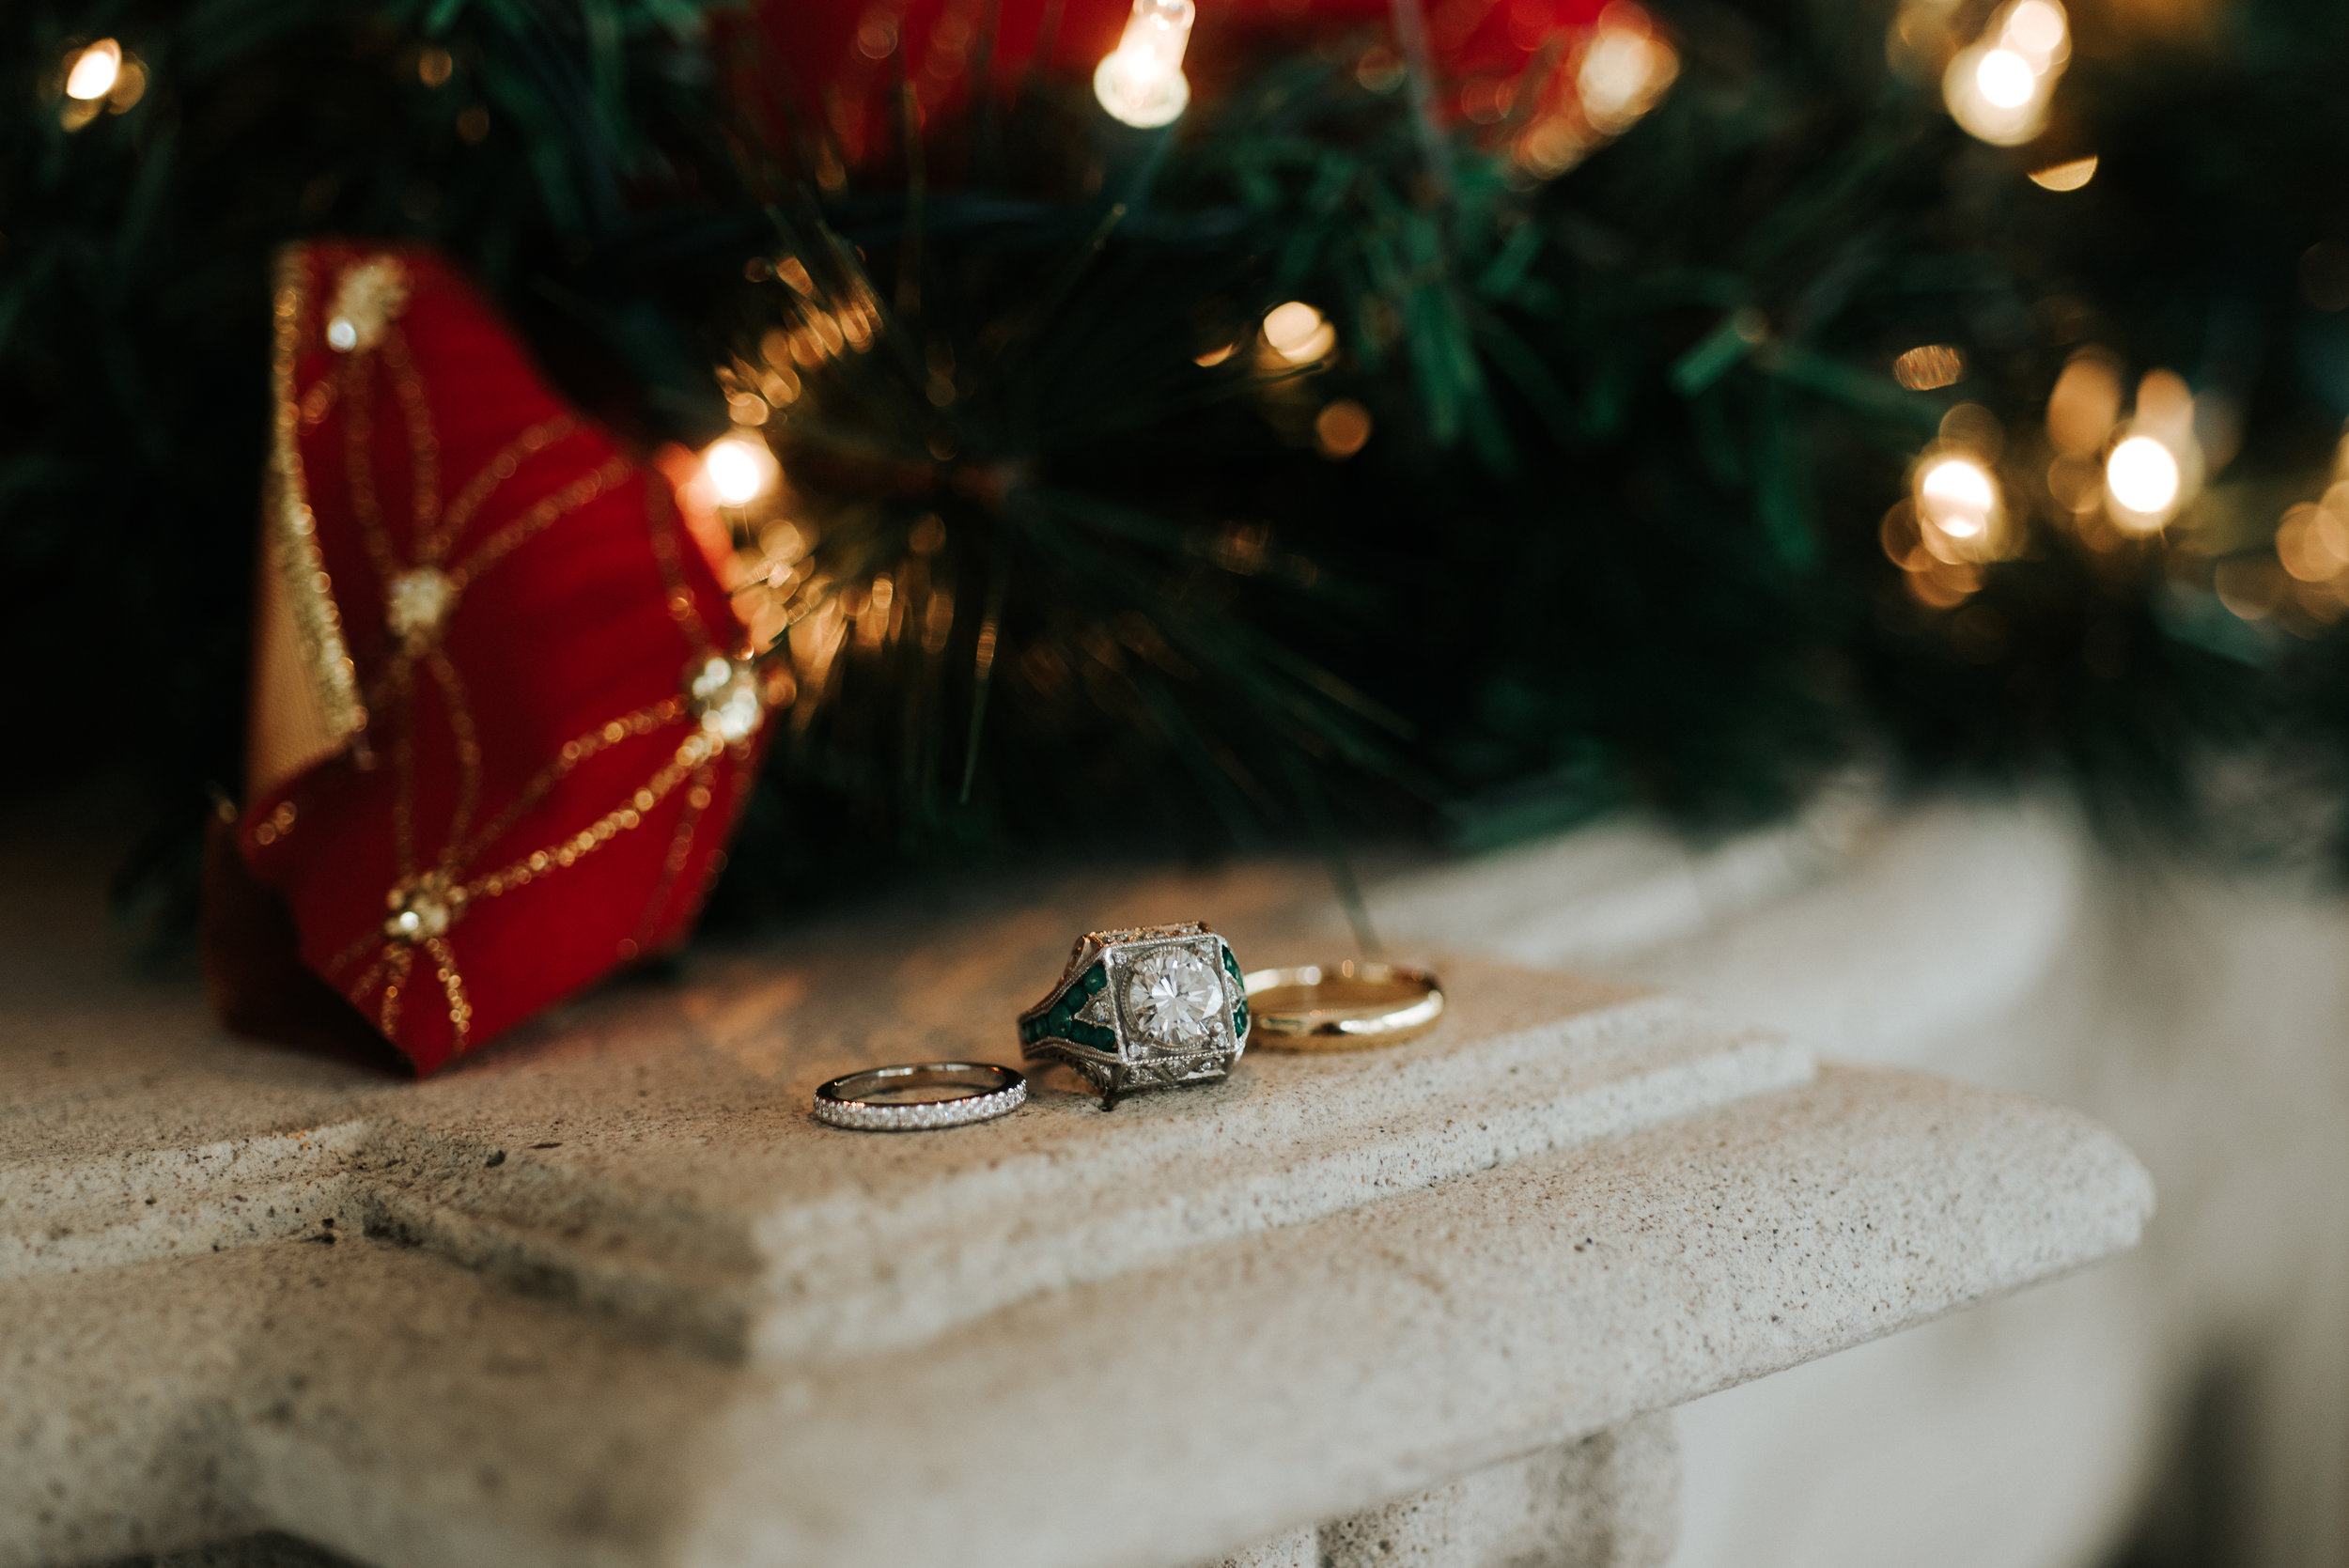 Southern Fete, Southern Wedding, Christmas Wedding, Bride and Groom rings